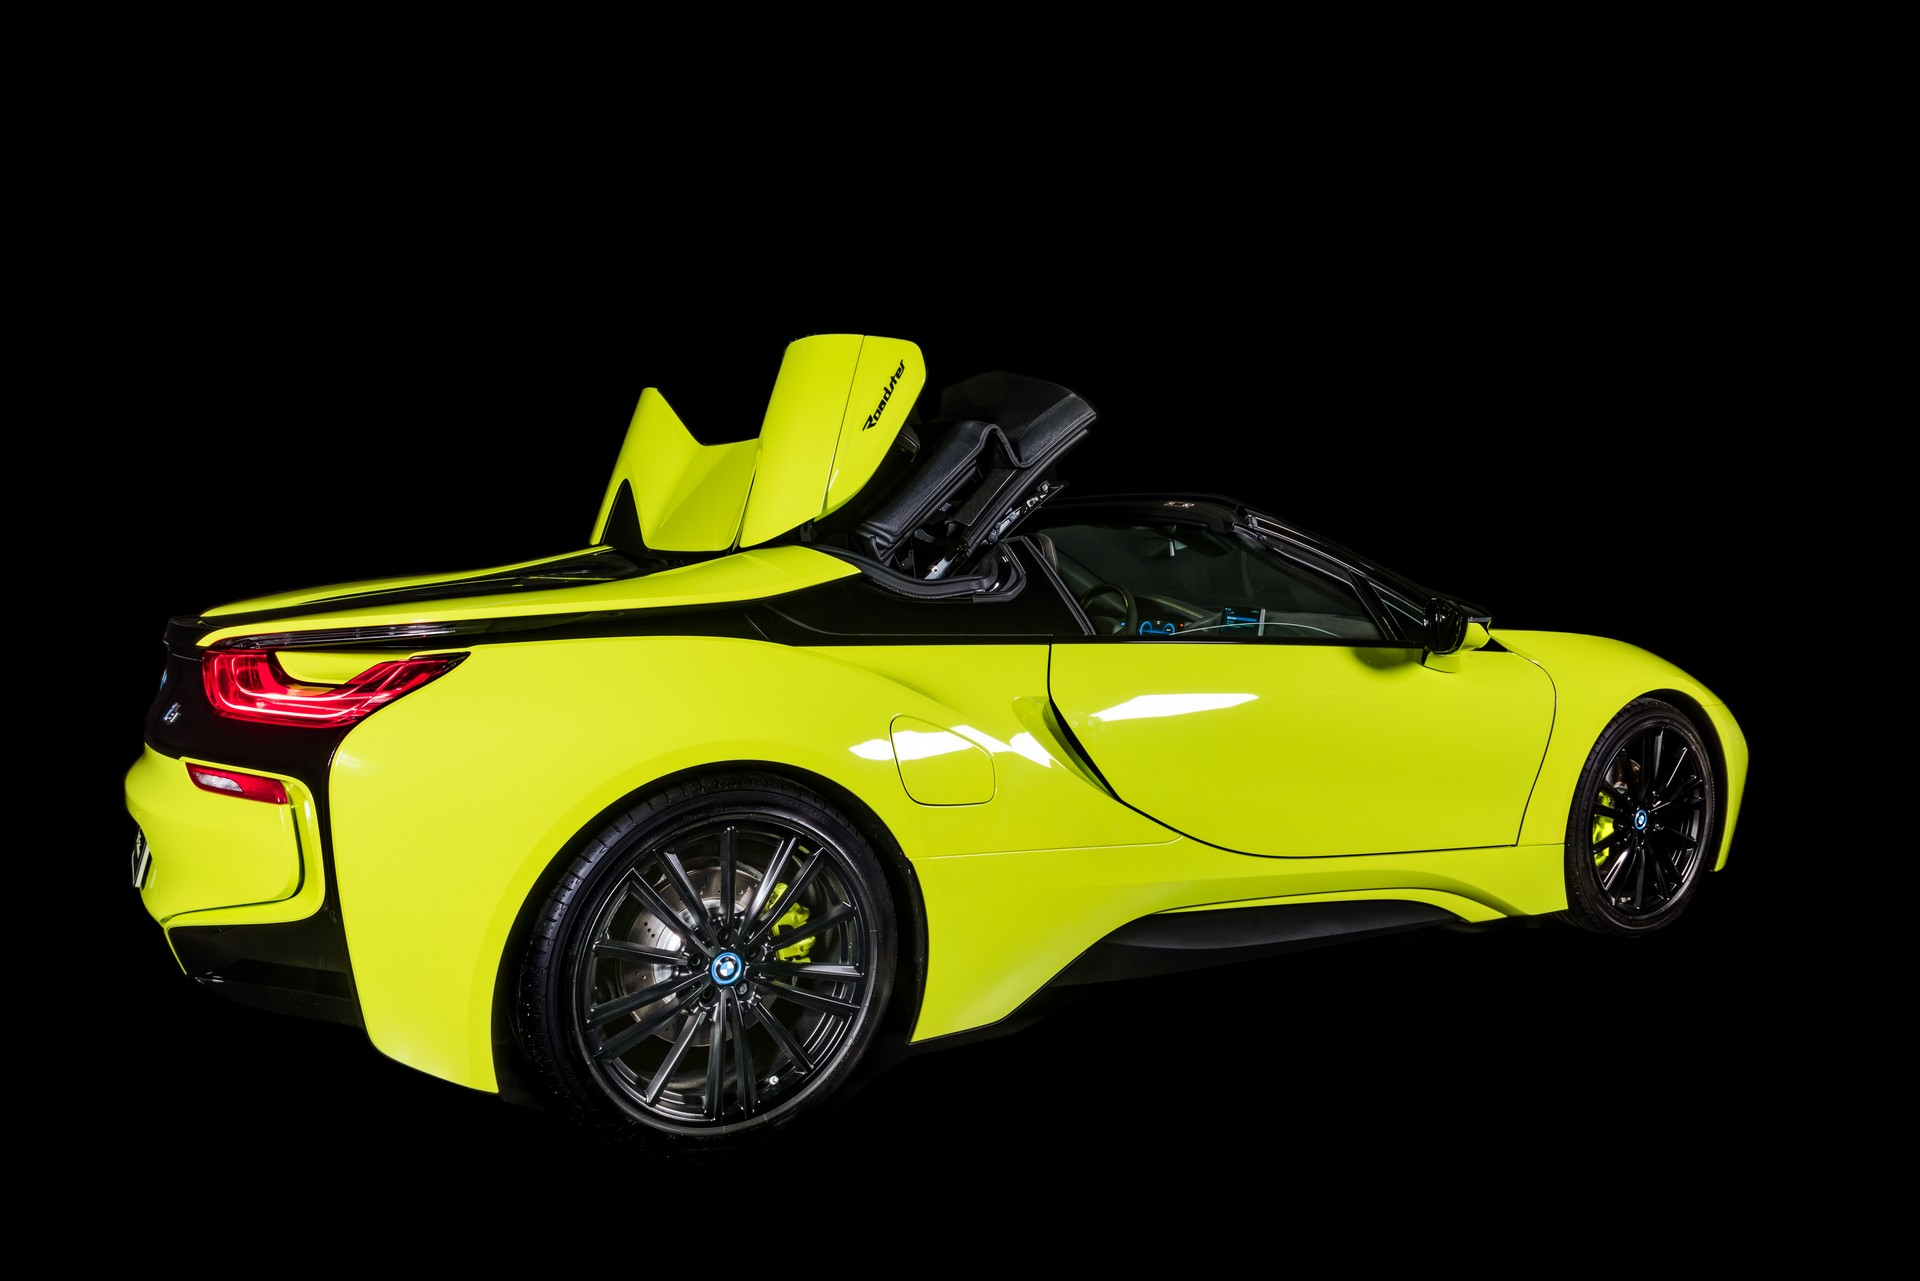 BMW-i8-Roadster-LimeLight-Edition-18